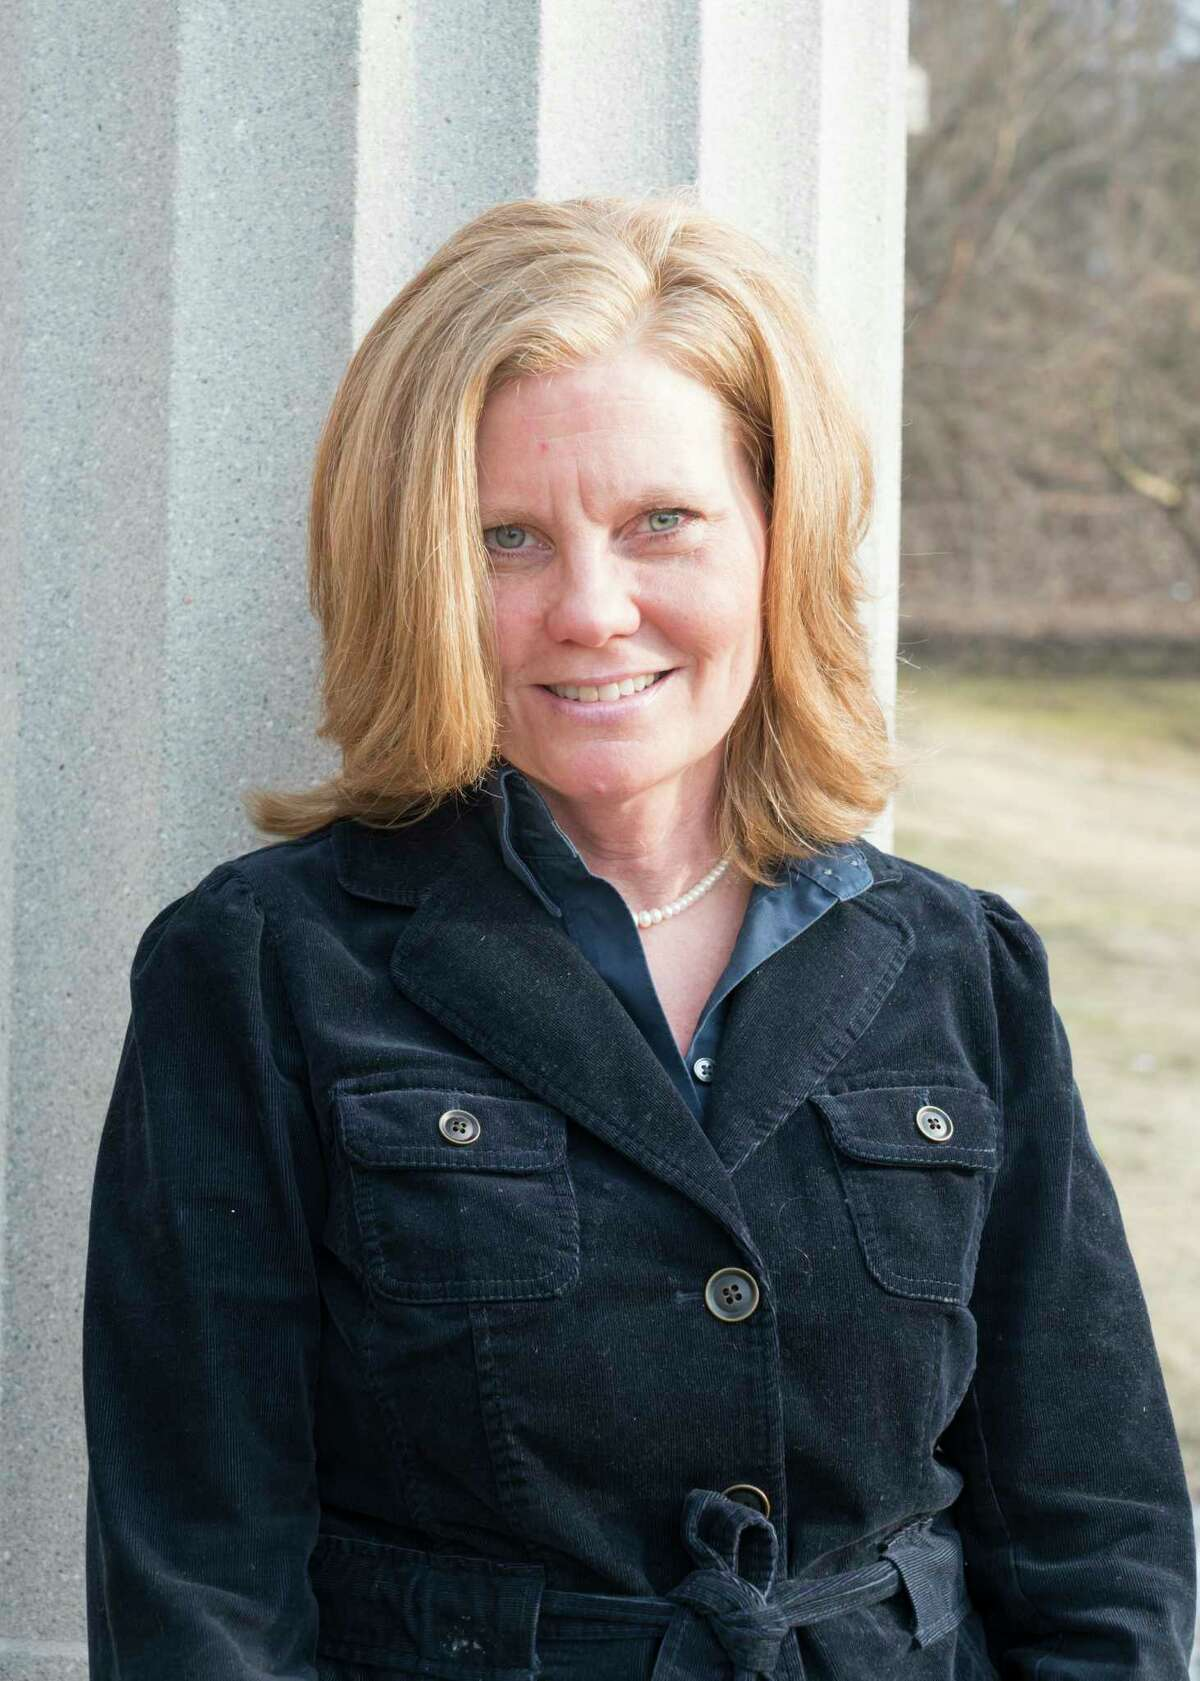 Patricia Morrison announced Saturday, April 13, 2019, that she is running for the Saratoga Springs finance commissioner's seat currently held by Michele Madigan. (Provided photo)